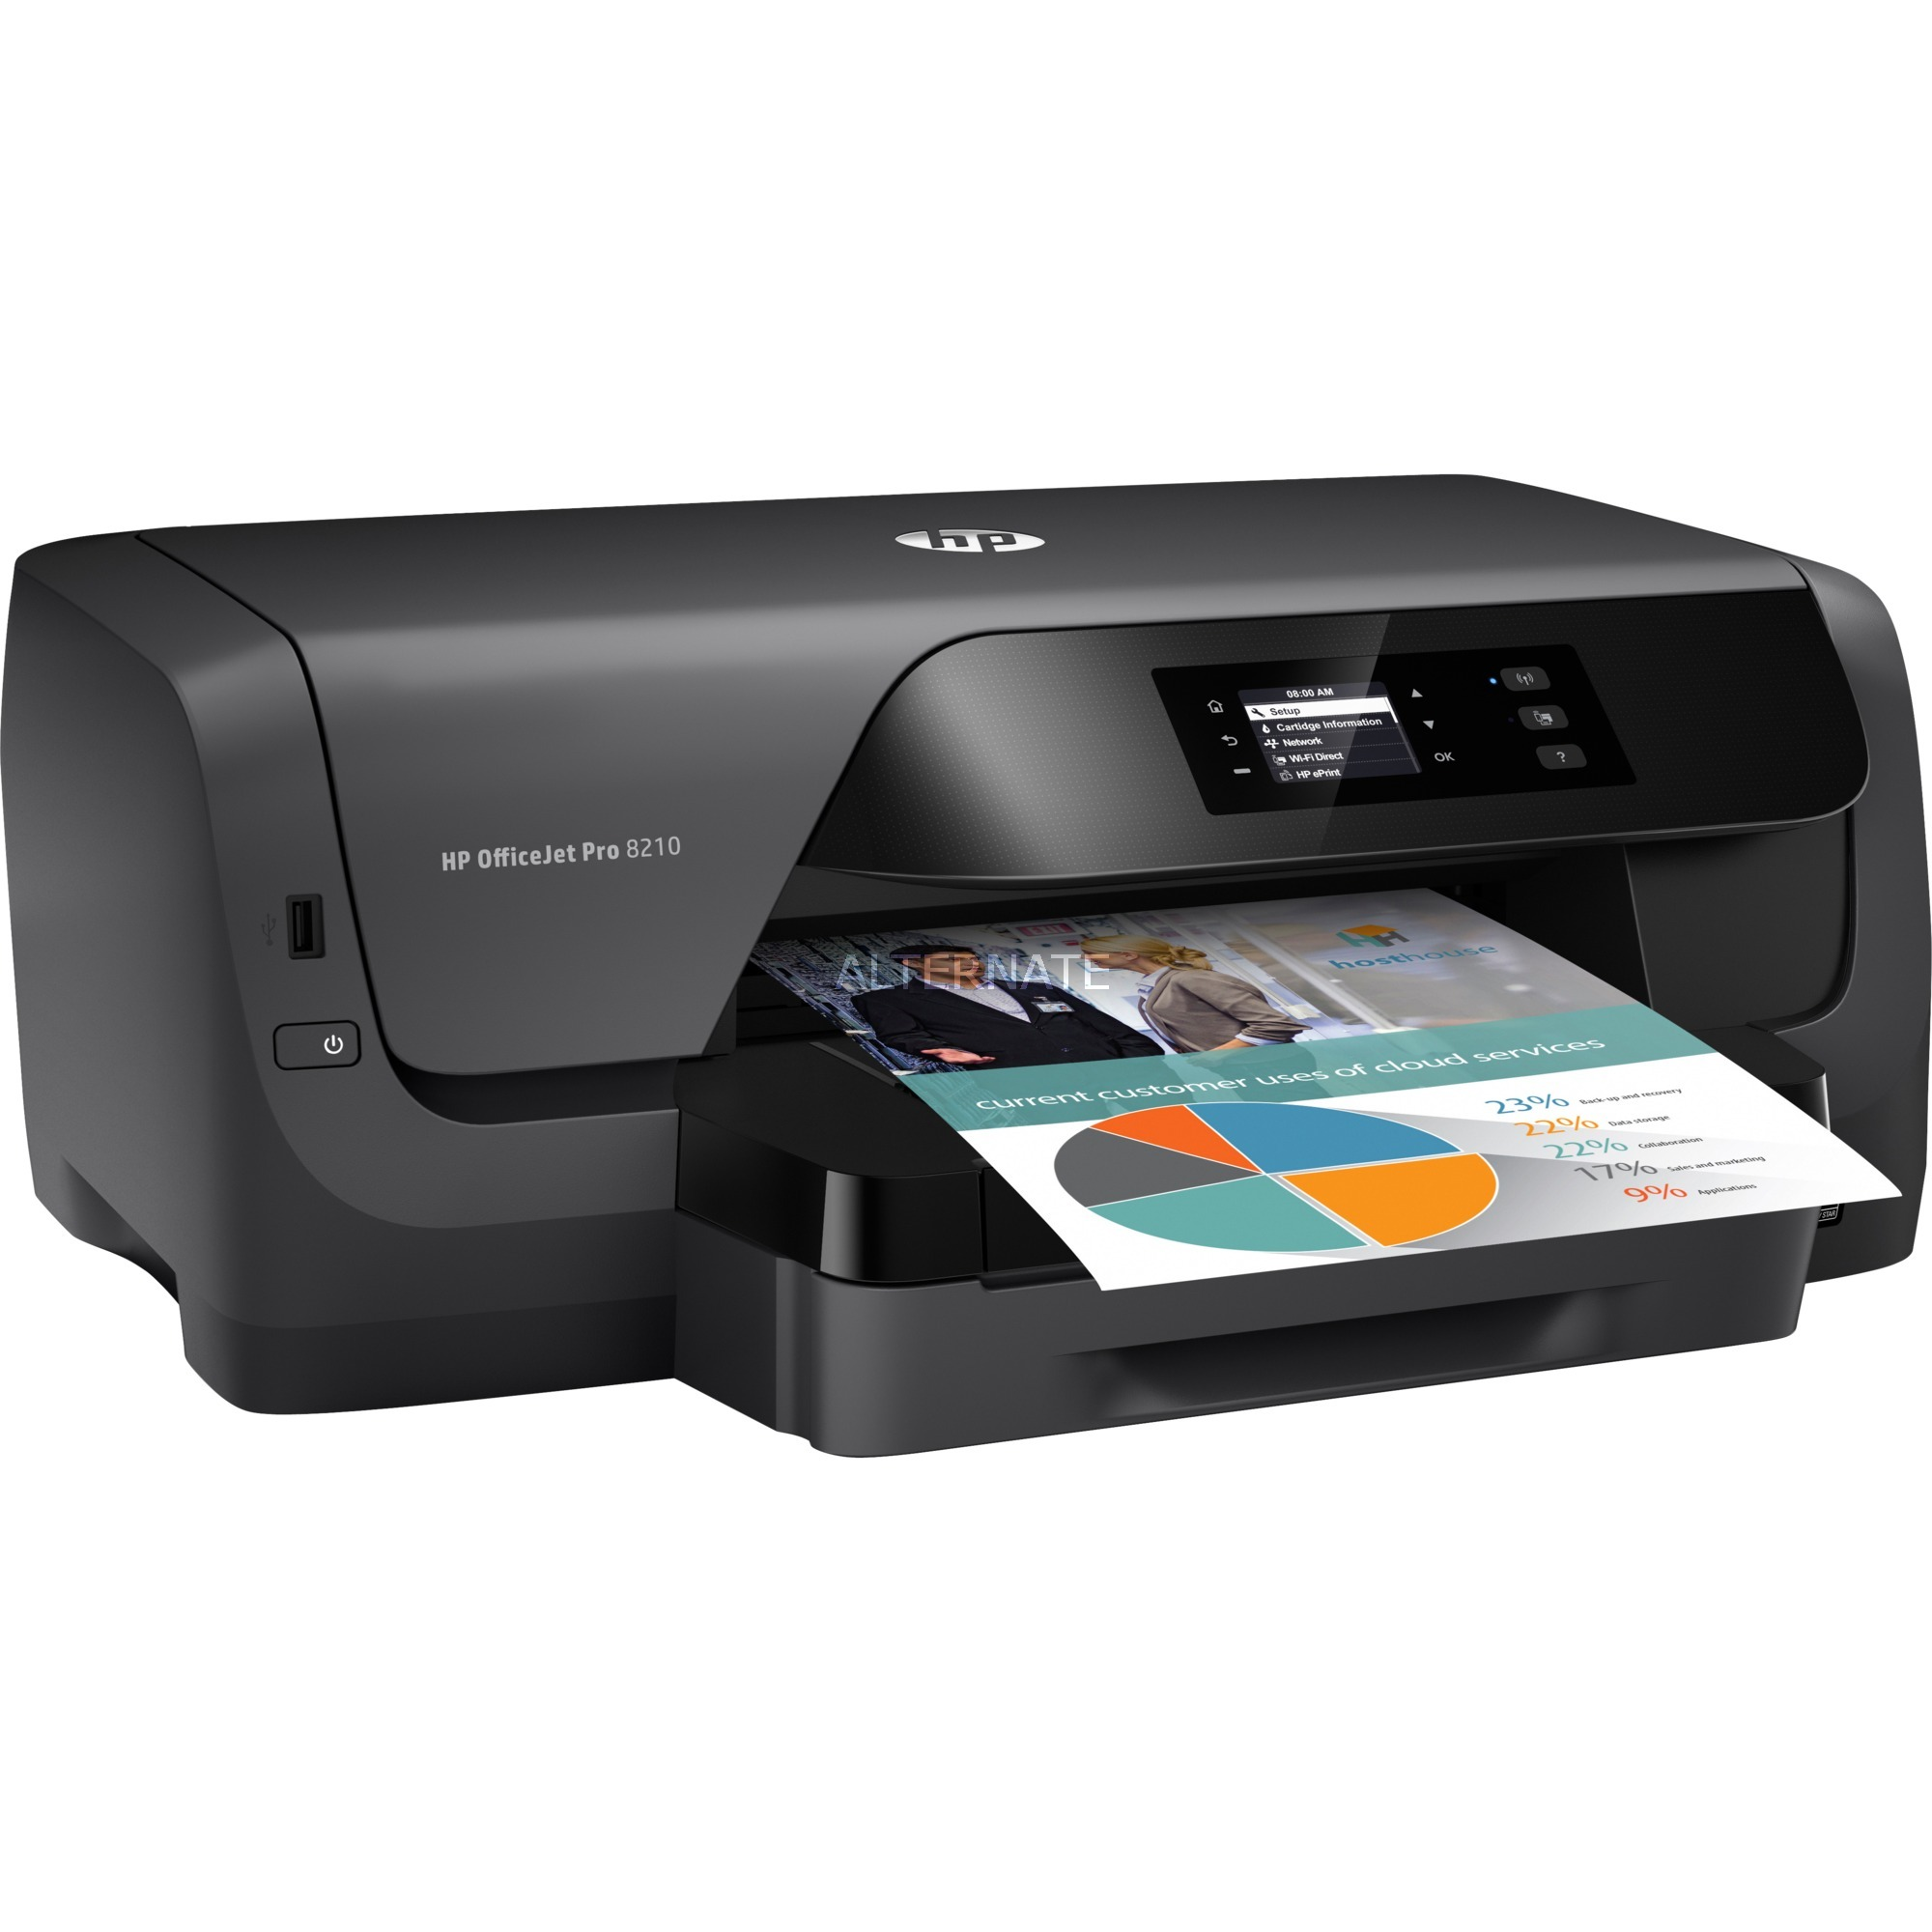 OfficeJet 8210 color, Impresora de chorro de tinta